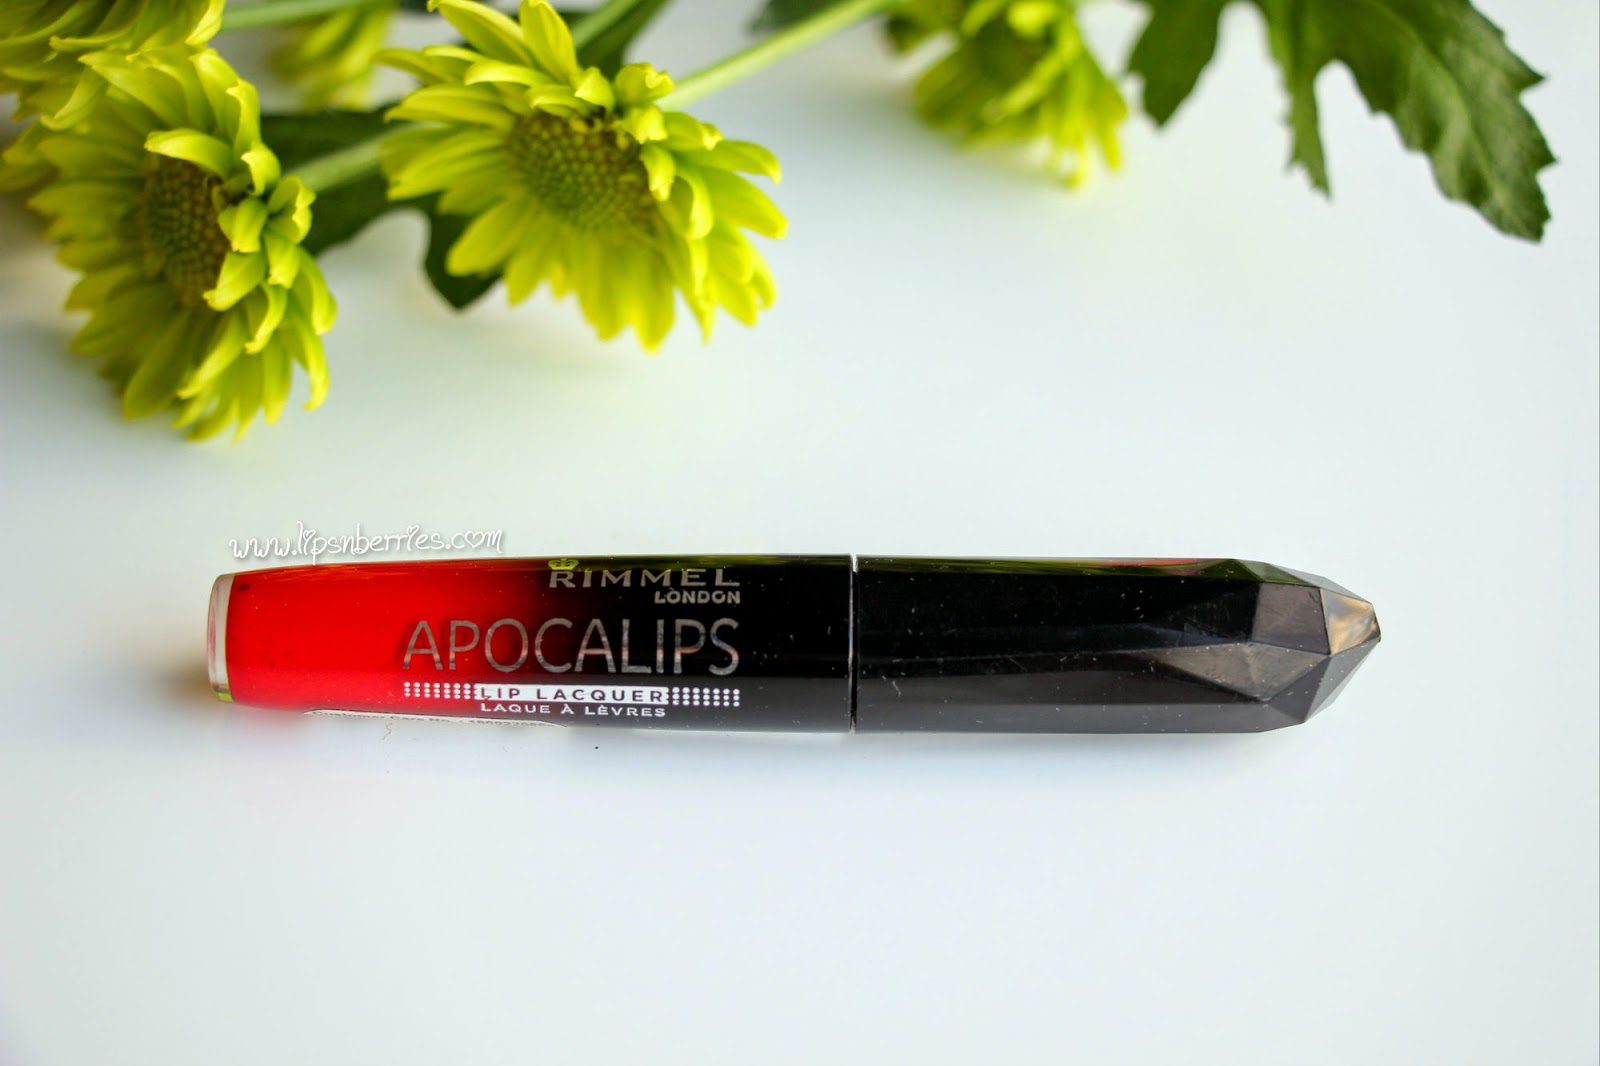 Rimmel apocalips review